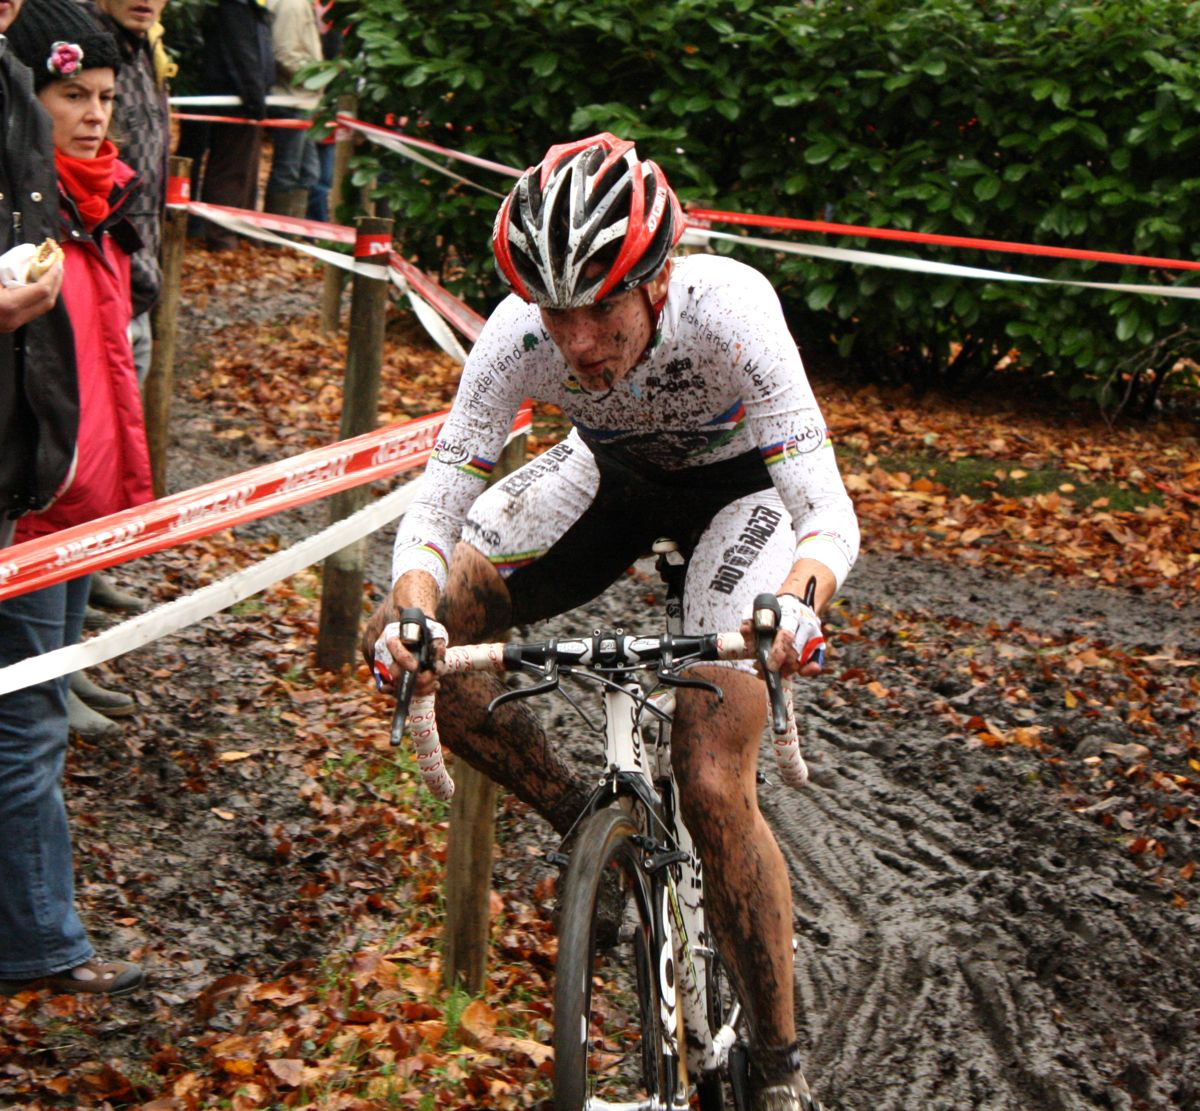 Marianne Vos rode well in the mud. ? Dan Seaton